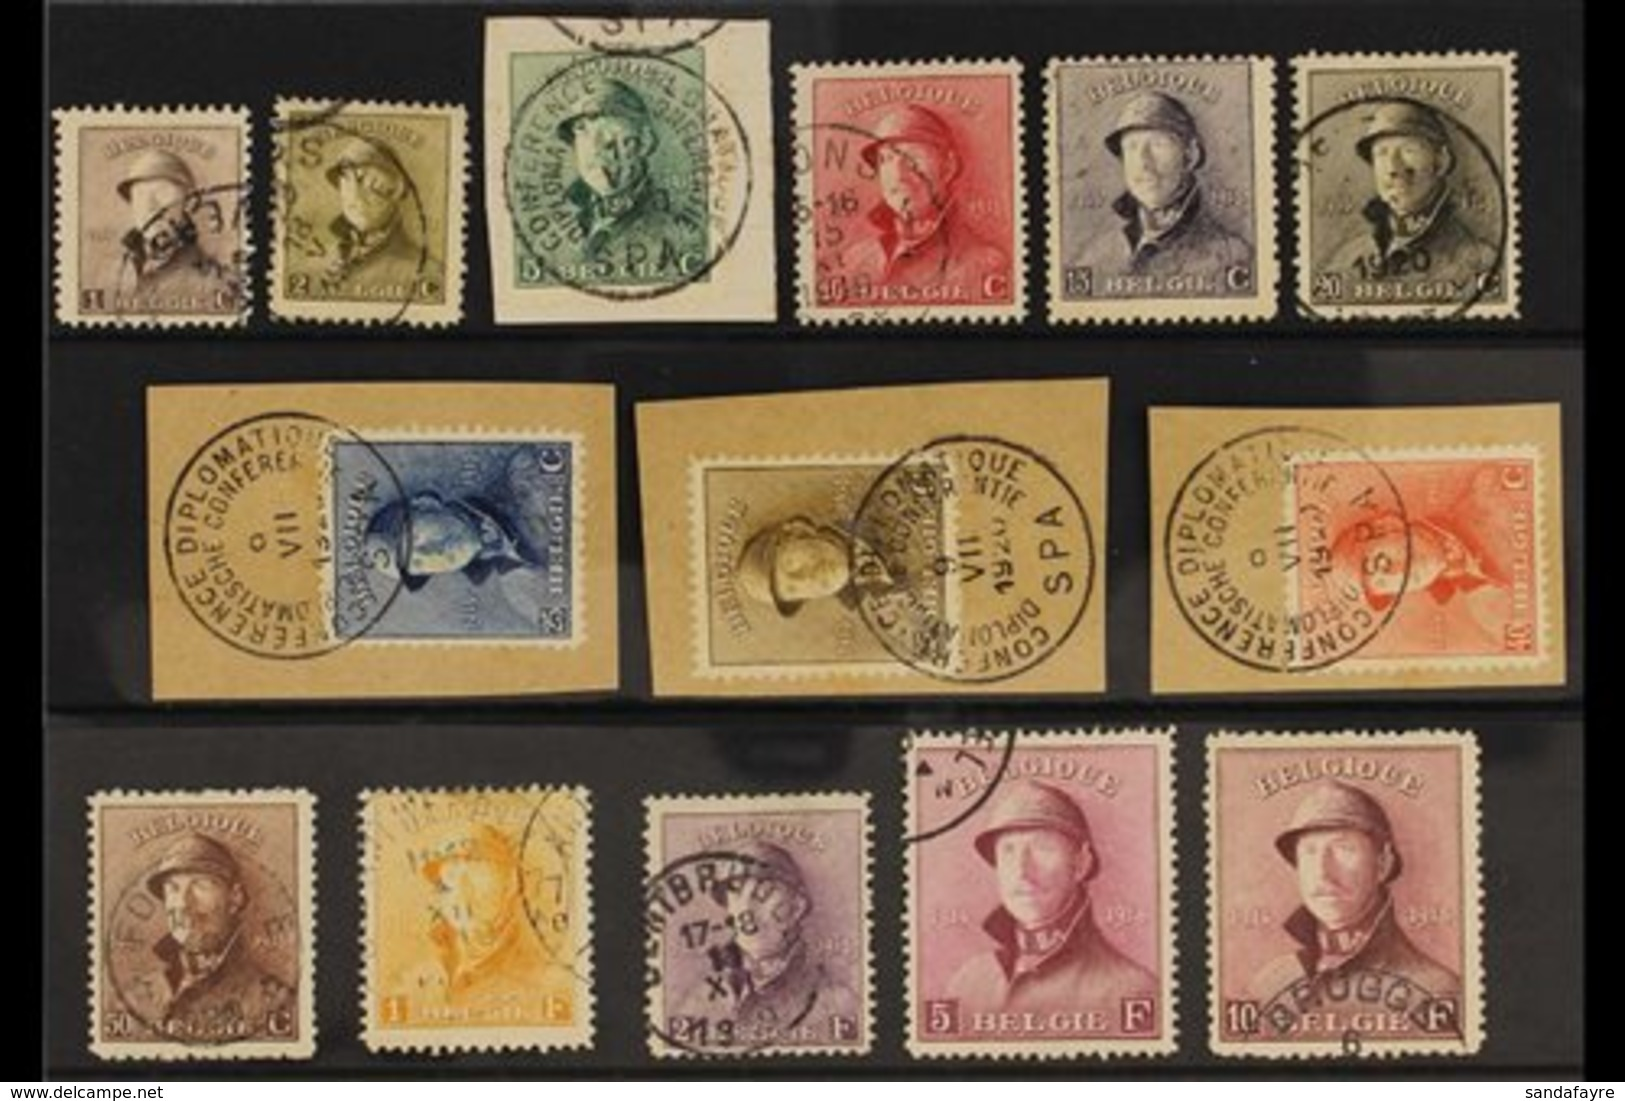 1919 King Albert Tin Hat Complete Set (COB 165/78, Michel 145/58, SG 237/50), Used, 2f & 10f With Small Thins, Fresh Col - Belgium